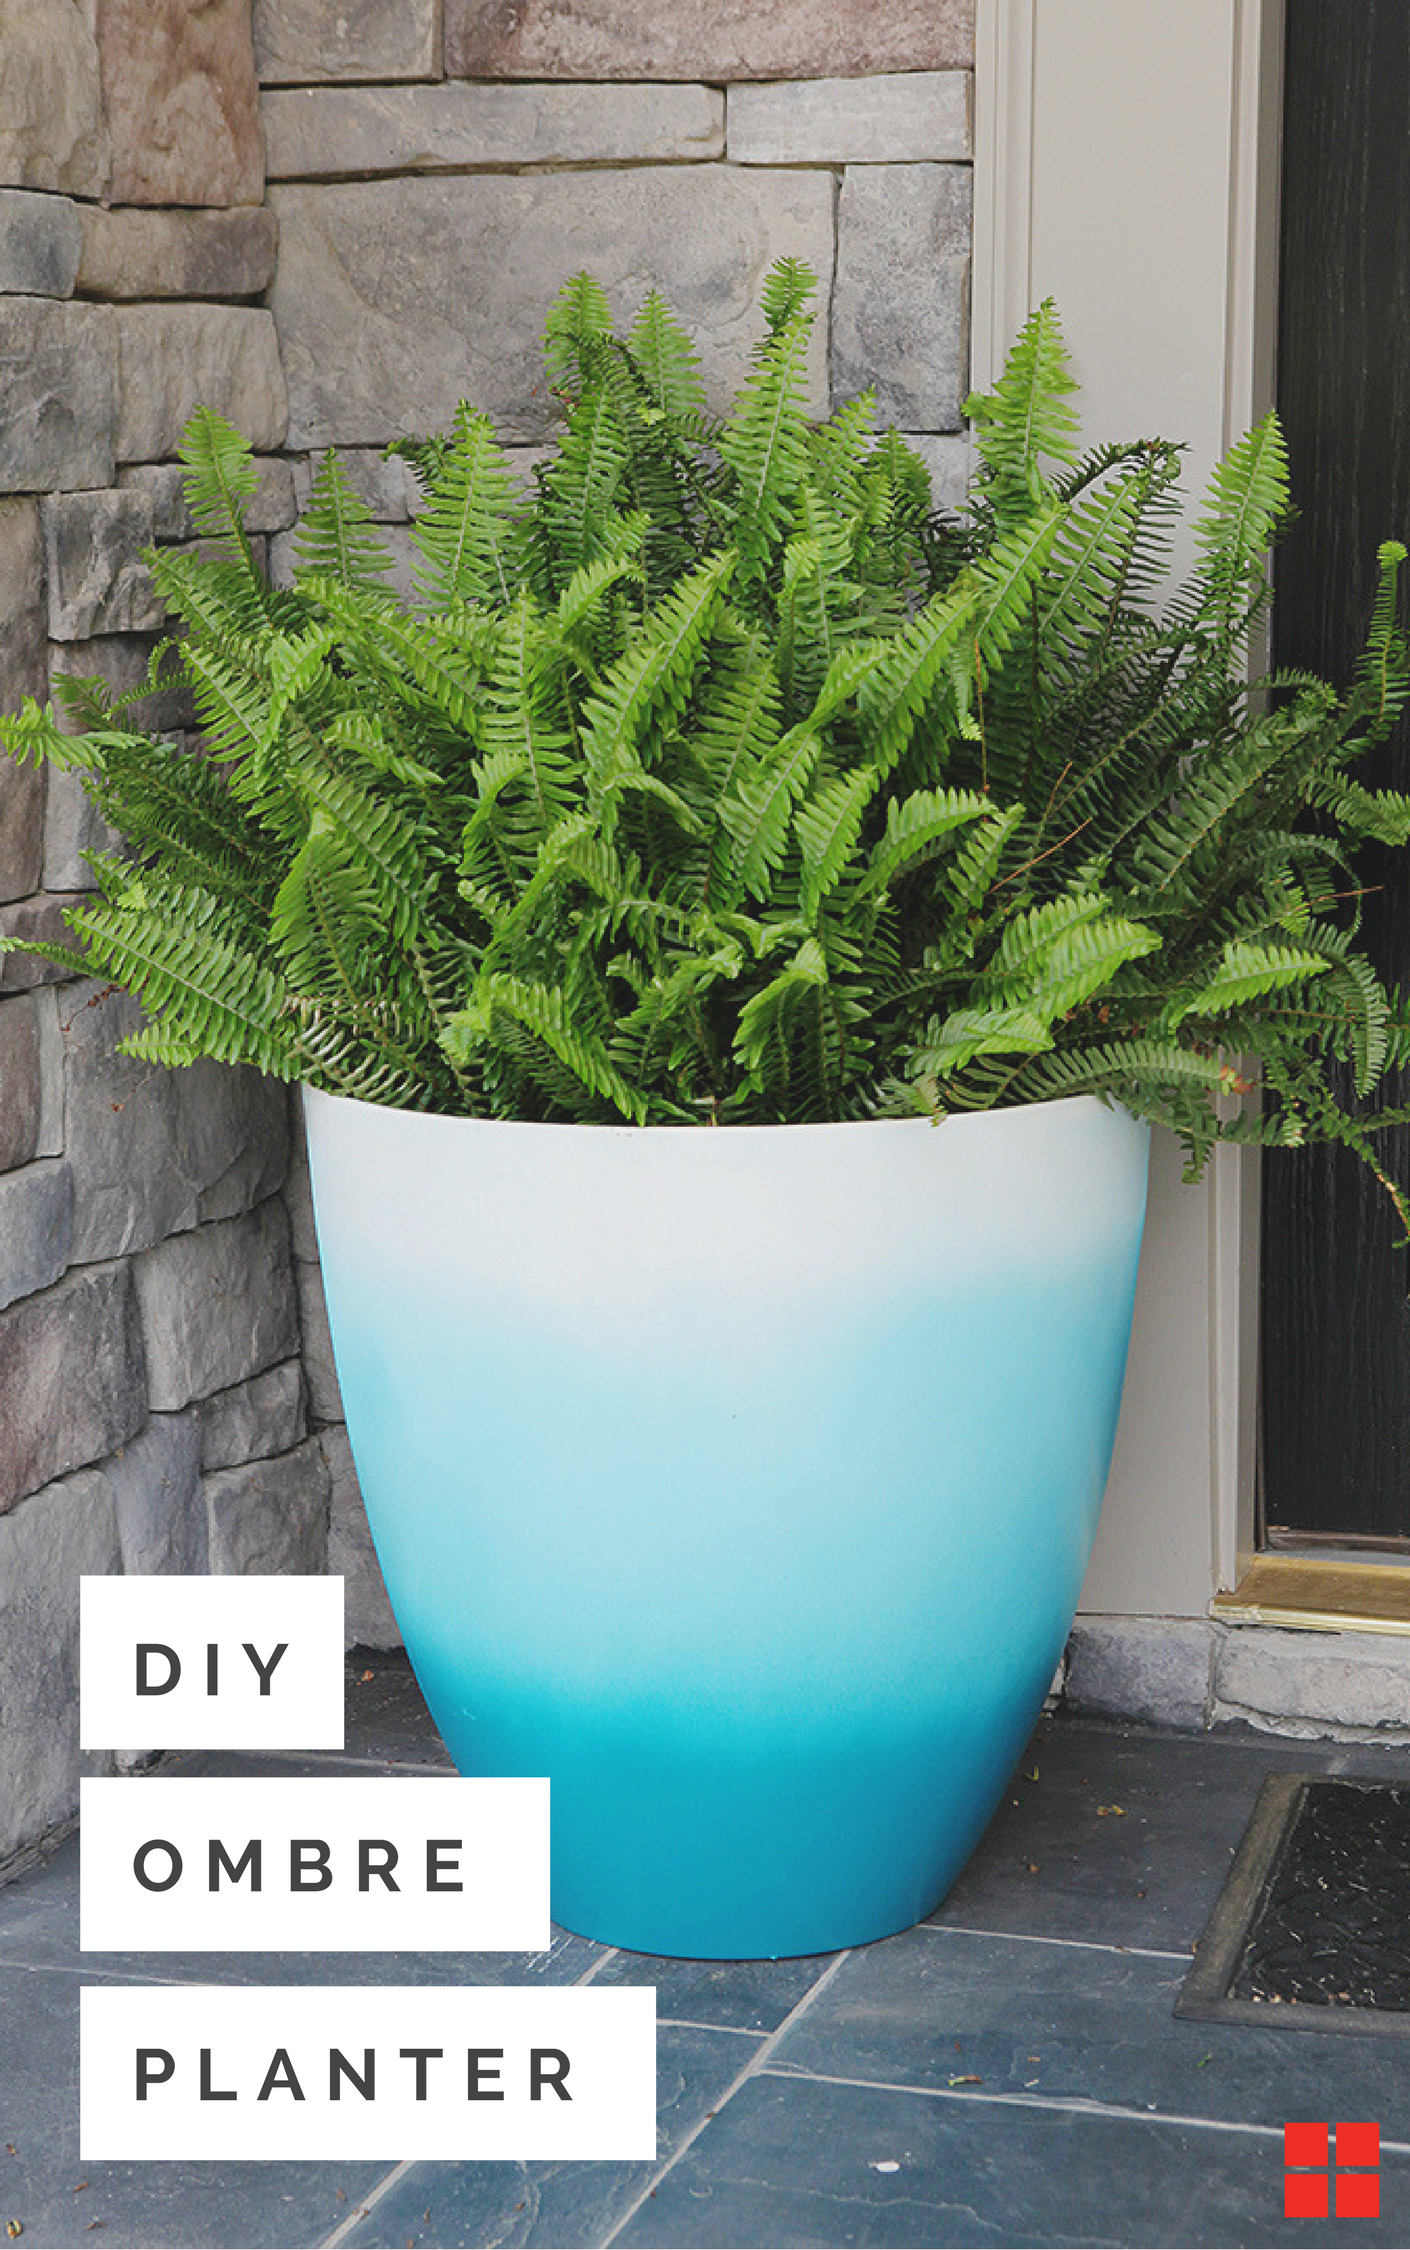 What Are You Planting This Weekend Fade To Blue Or Whatever Hue Your Heart Desires With This Easy Diy Flower Pots Outdoor Painted Flower Pots Outdoor Flowers